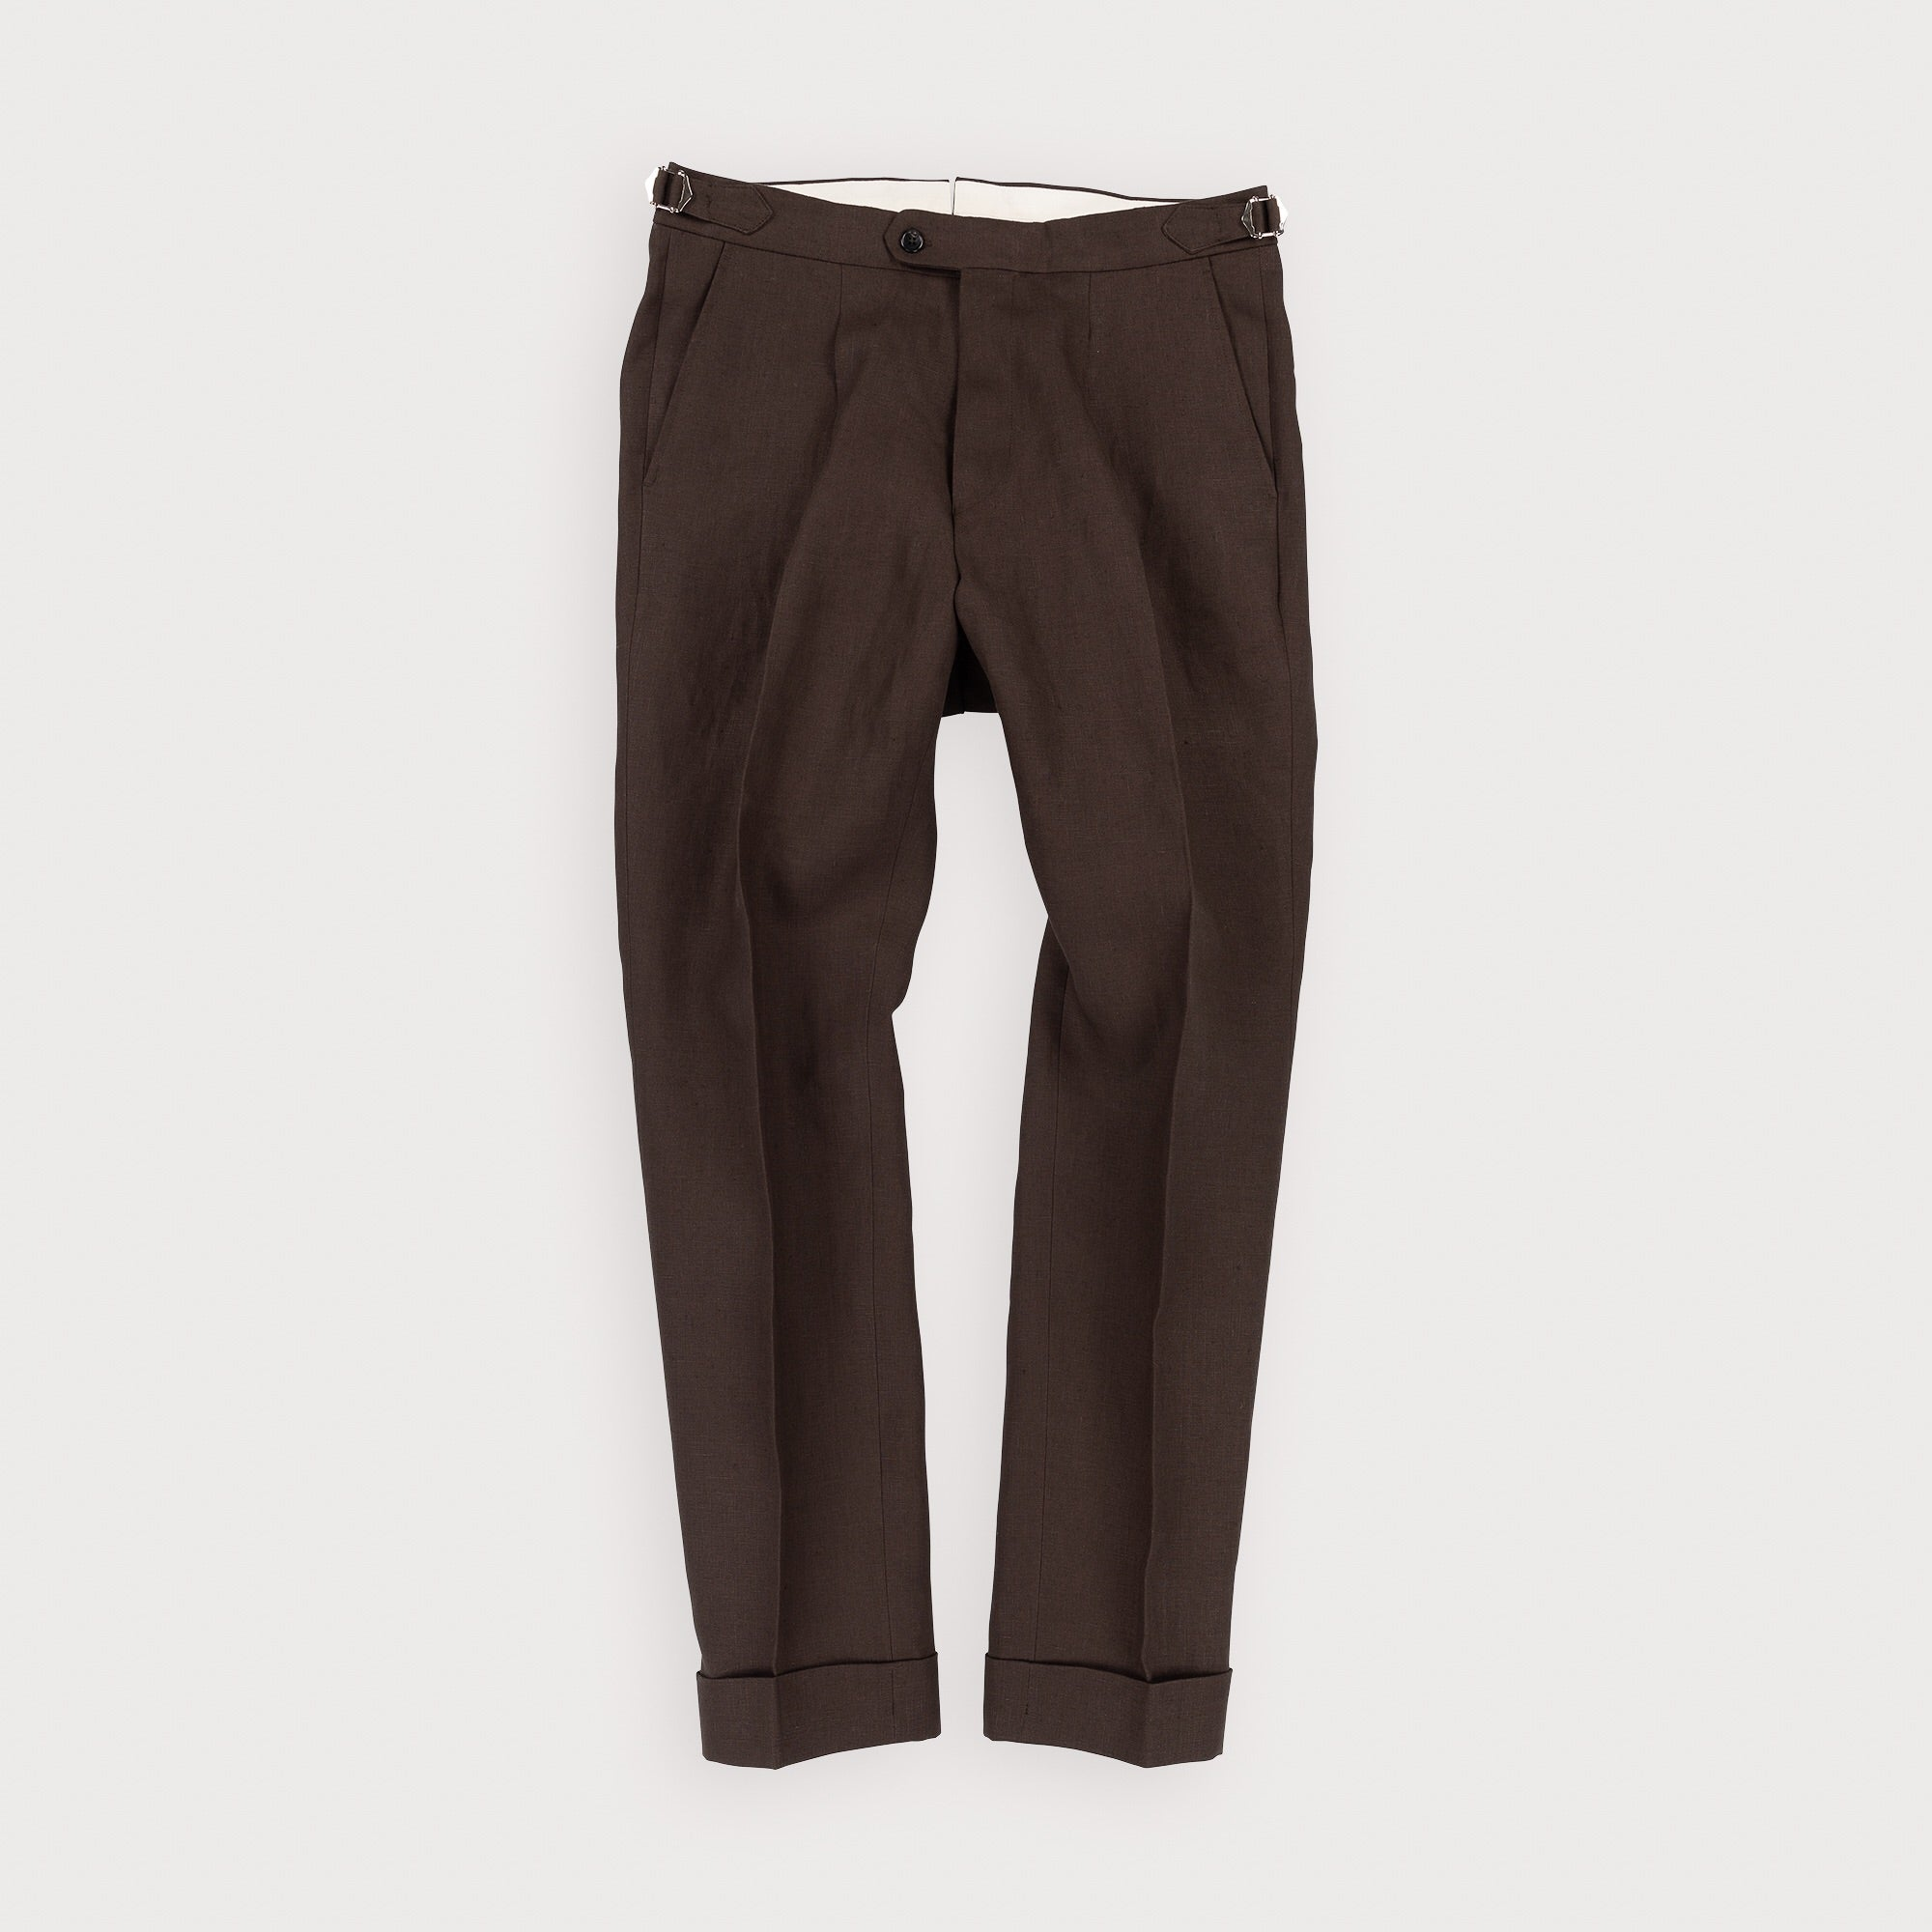 Single Pleat Trouser - Dark Brown Linen